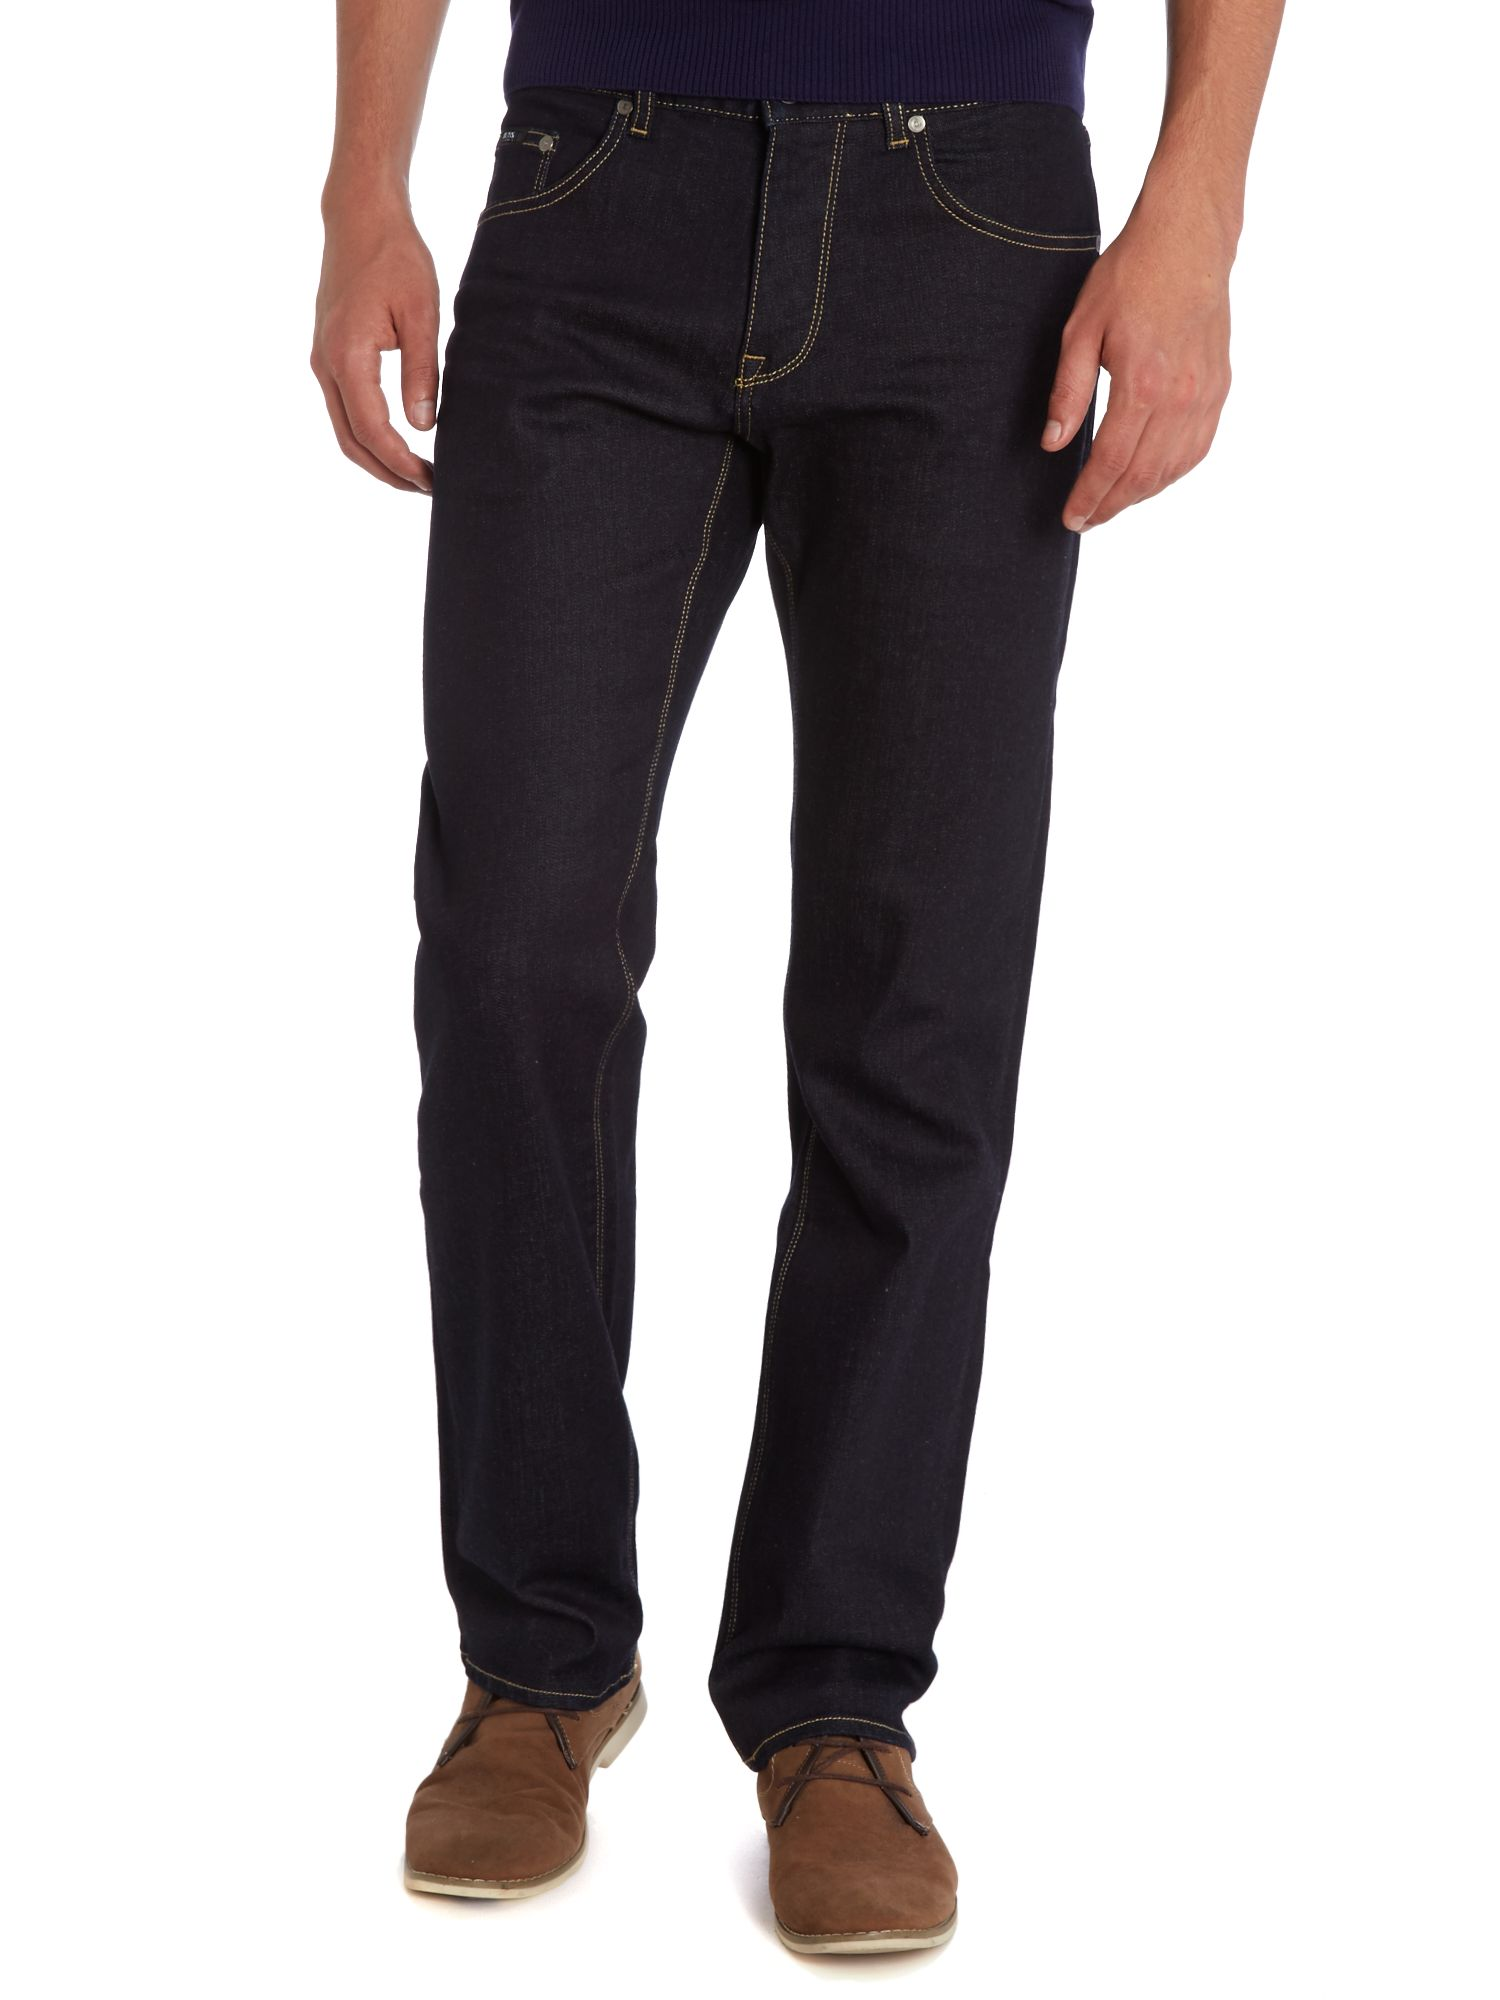 Maine regular straight dark rinse jean